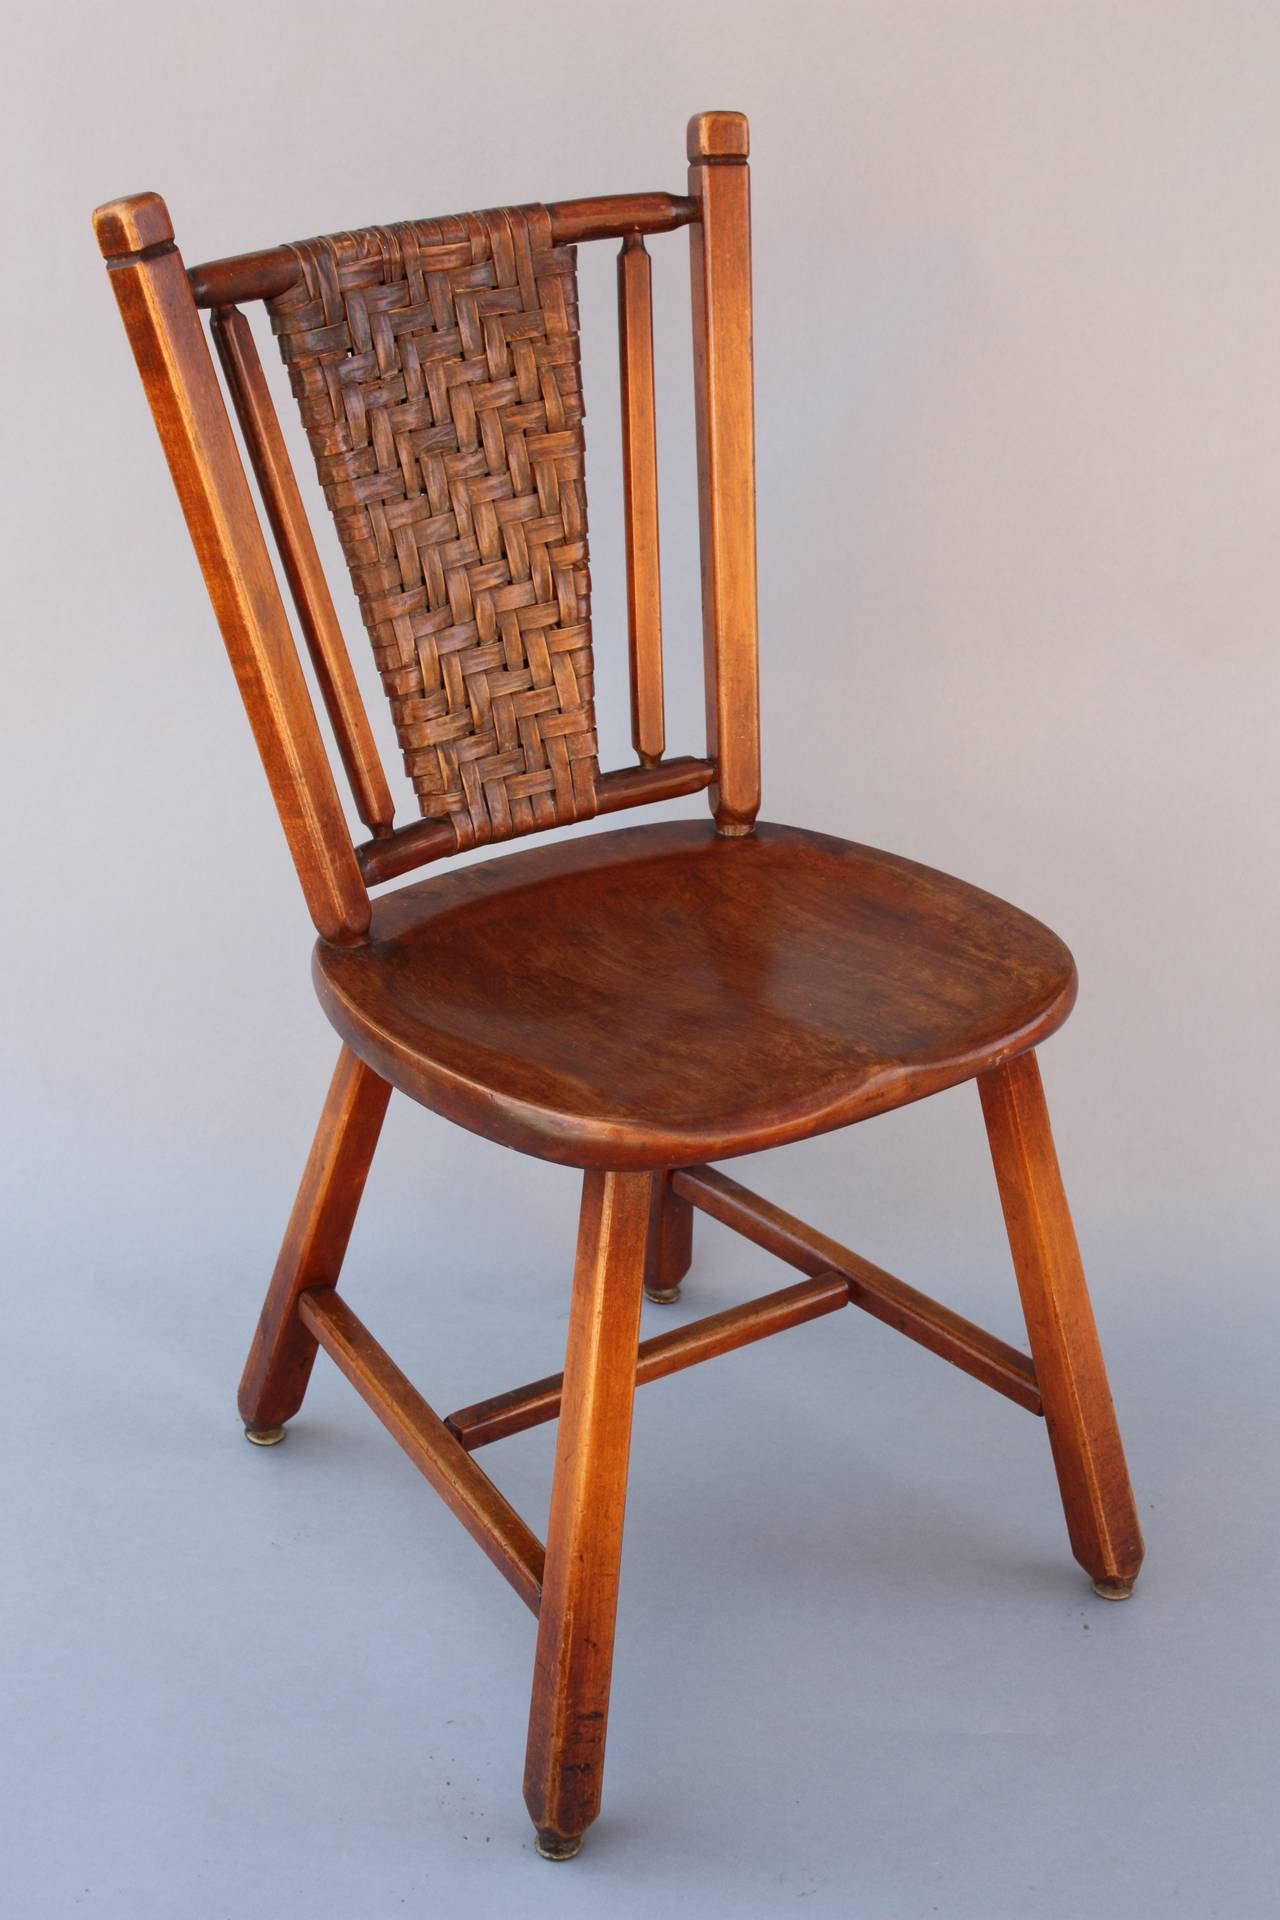 Circa 1910 Old Hickory chair. Signed. 18.5